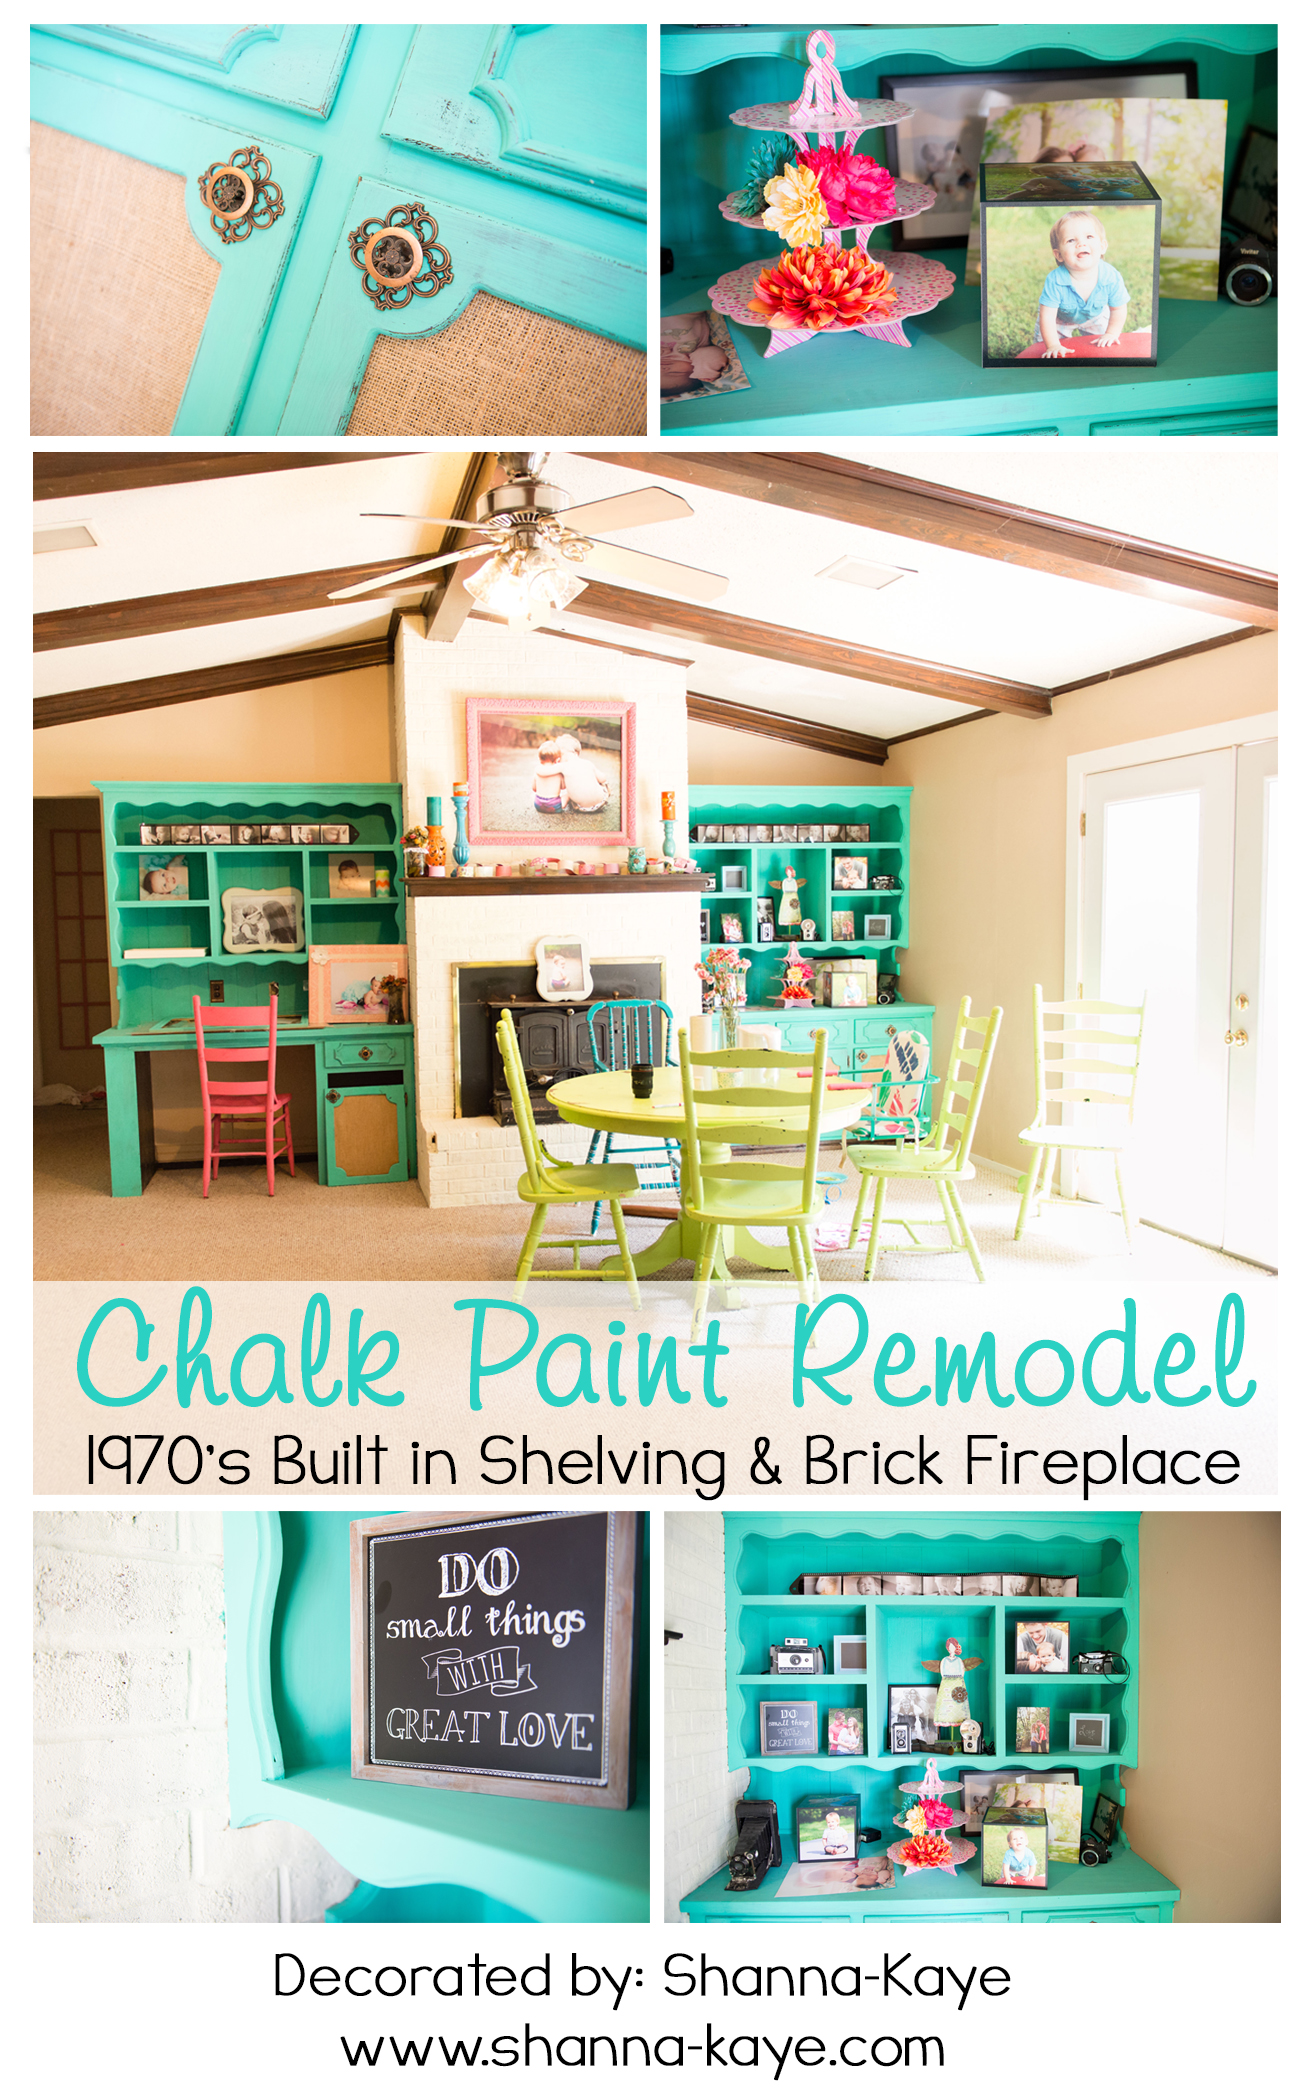 chalk paint remodel 1970 u0027s built in shelves u0026 fireplace shanna